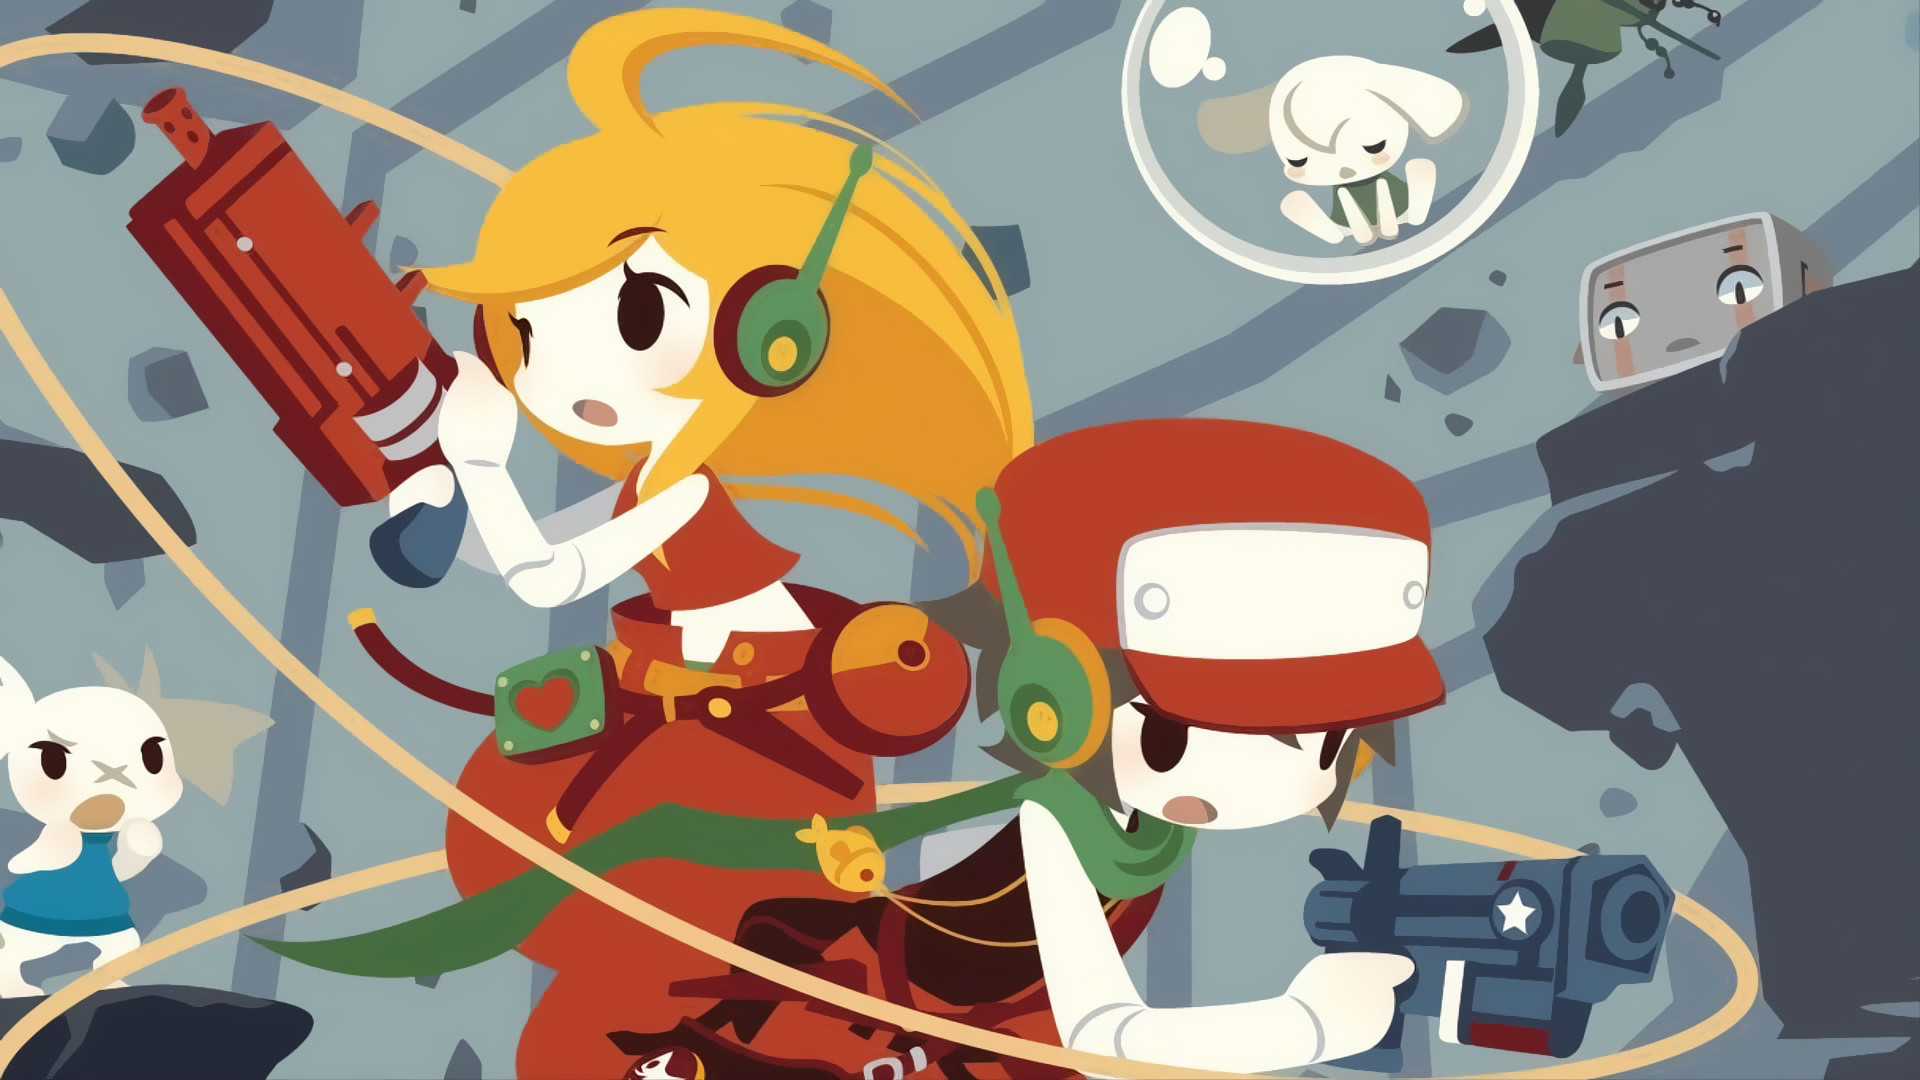 1920x1080 Cave Story HD Wallpaper | Background Image |  | ID:442132 -  Wallpaper Abyss